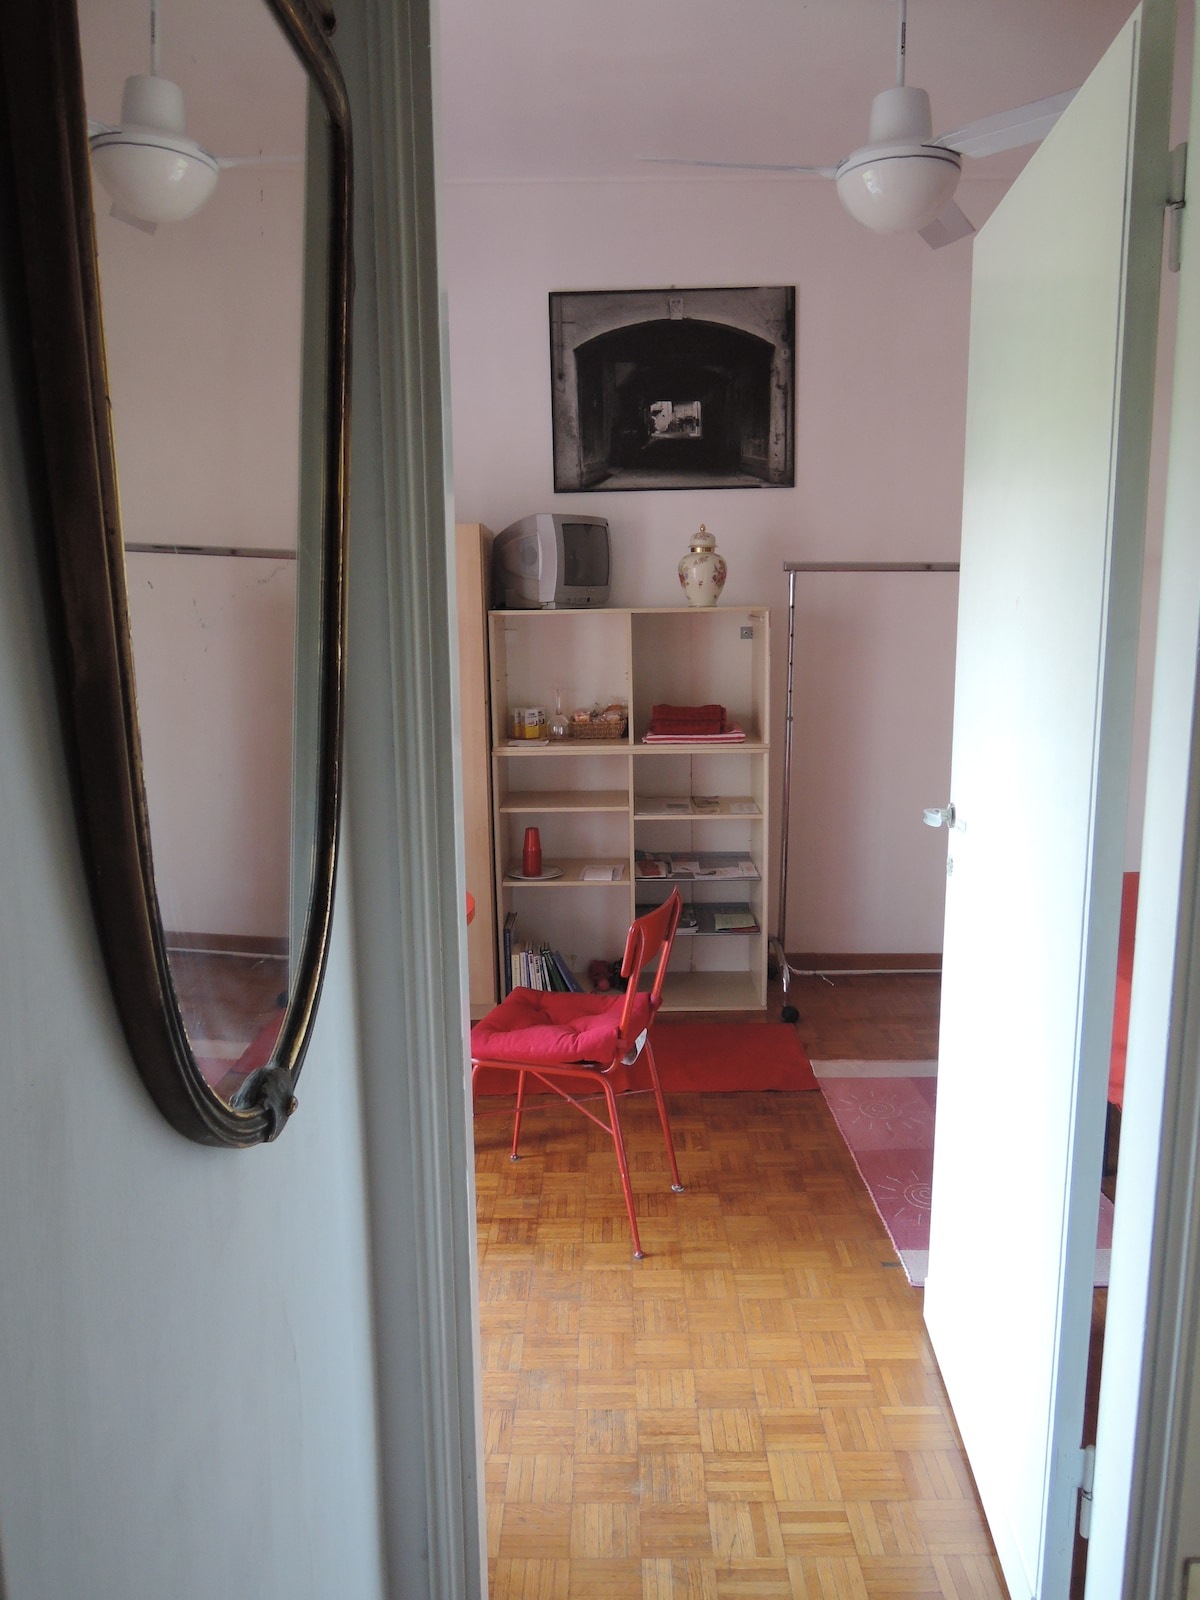 entrance with a mirrow in red room